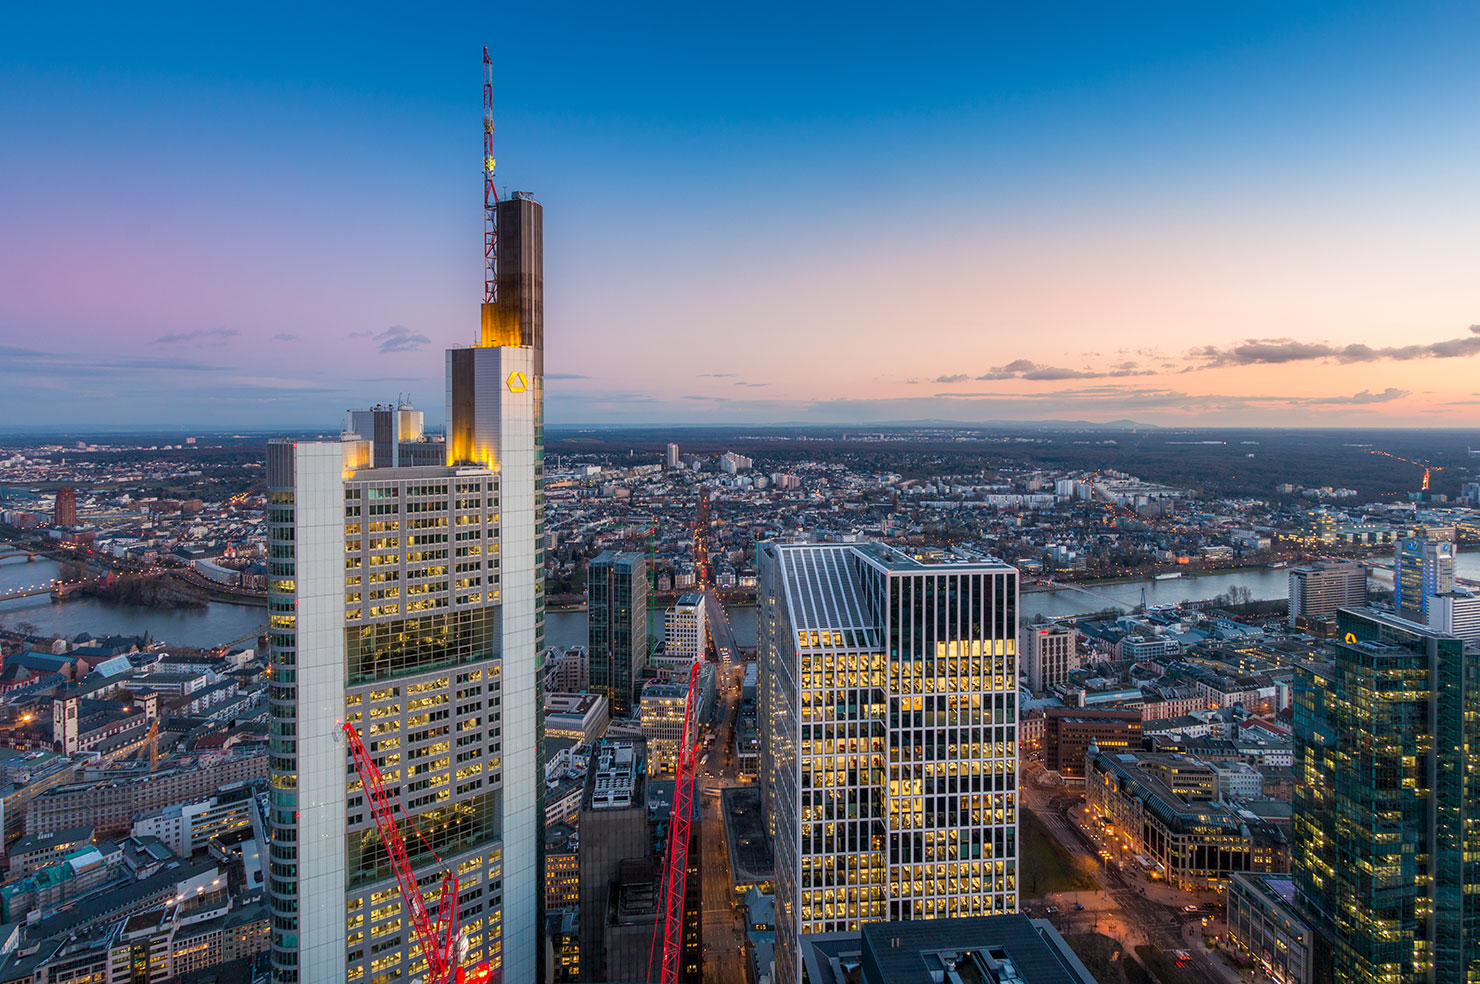 Frankfurt Commerzbank Tower Maintower blaue Stunde Winter